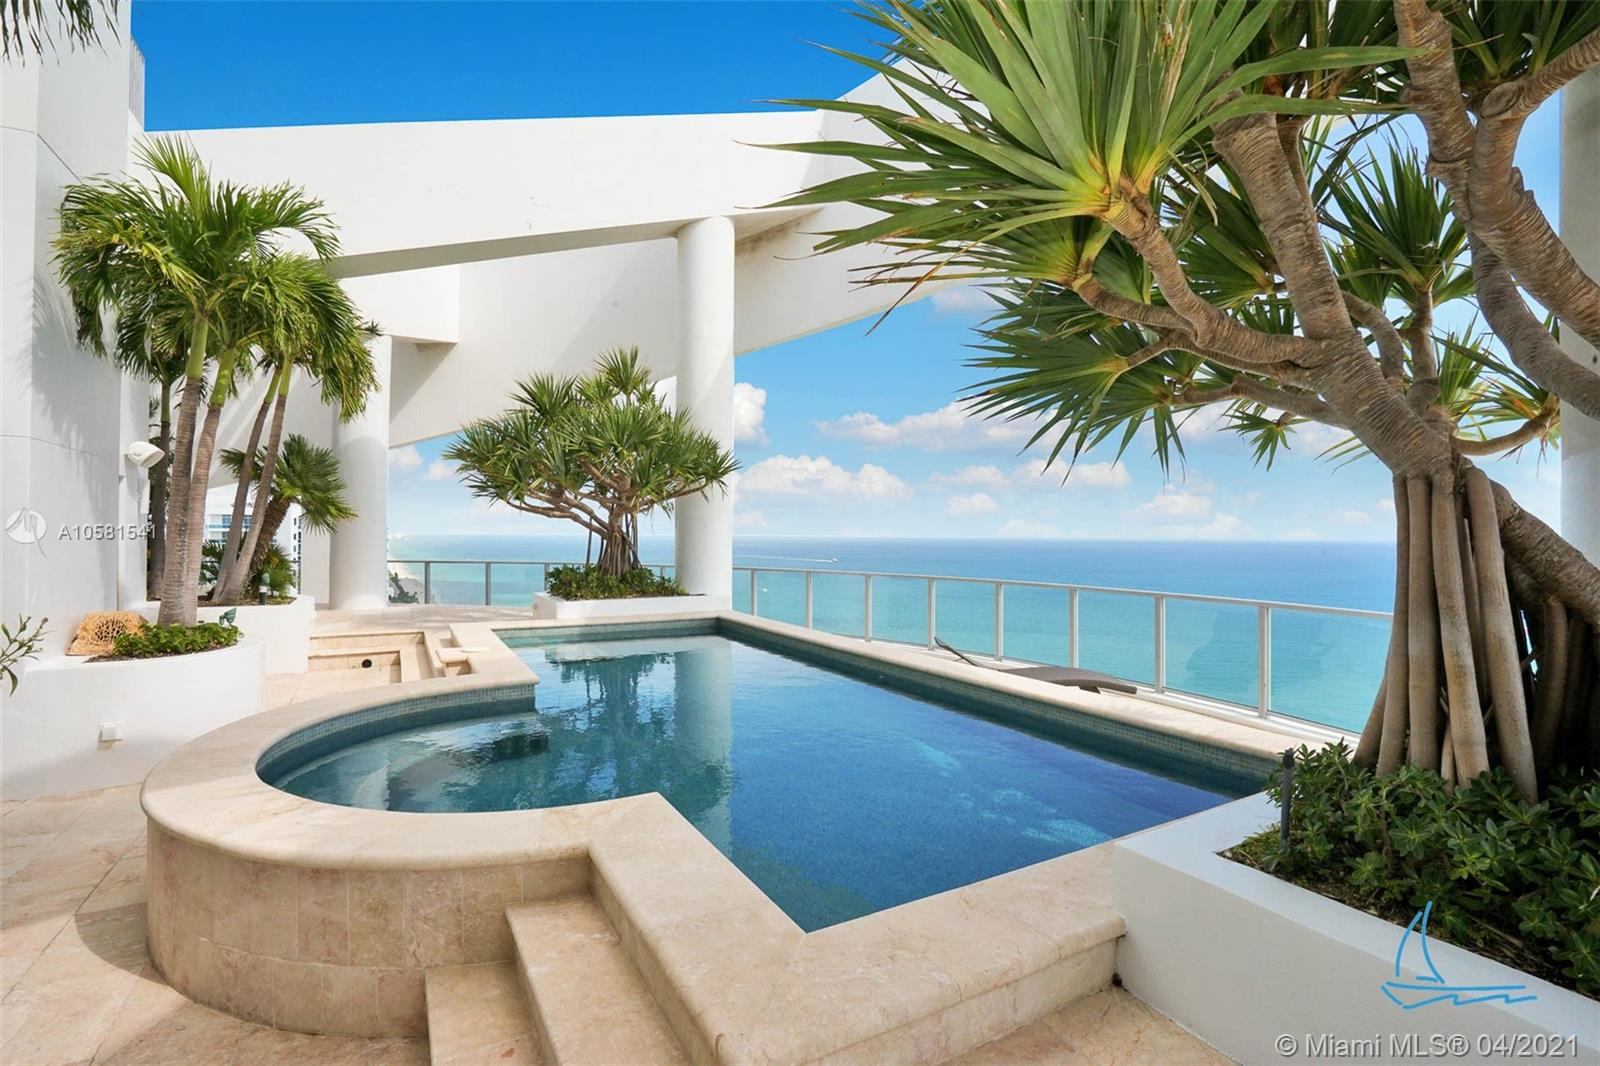 This rare and significant 3 floor PH will take your breath away. Enter through a private elevator to a grand view of the ocean adorned with a beautiful Chihuly Chandelier and an indoor waterfall spanning 2 floors in height. The countertops and design of this mansion in the sky have been  conceptualized and brought to life bringing South Floridas natural beauty of the ocean indoors. Other features of this gorgeous 5 bedroom residence include an in-home, personal, elevator to take you to the 3rd floor where you are enchanted by your own landscaped and light designed terrace with a pool, jacuzzi, and irrigation system. Outside of this gracious living space is your own private beach cabana, 11 parking spots with built-out building entrance, gym, spa, and onsite​​‌​​​​‌​​‌‌​‌‌‌​​‌‌​‌‌‌​​‌‌​‌‌‌ restaurant.